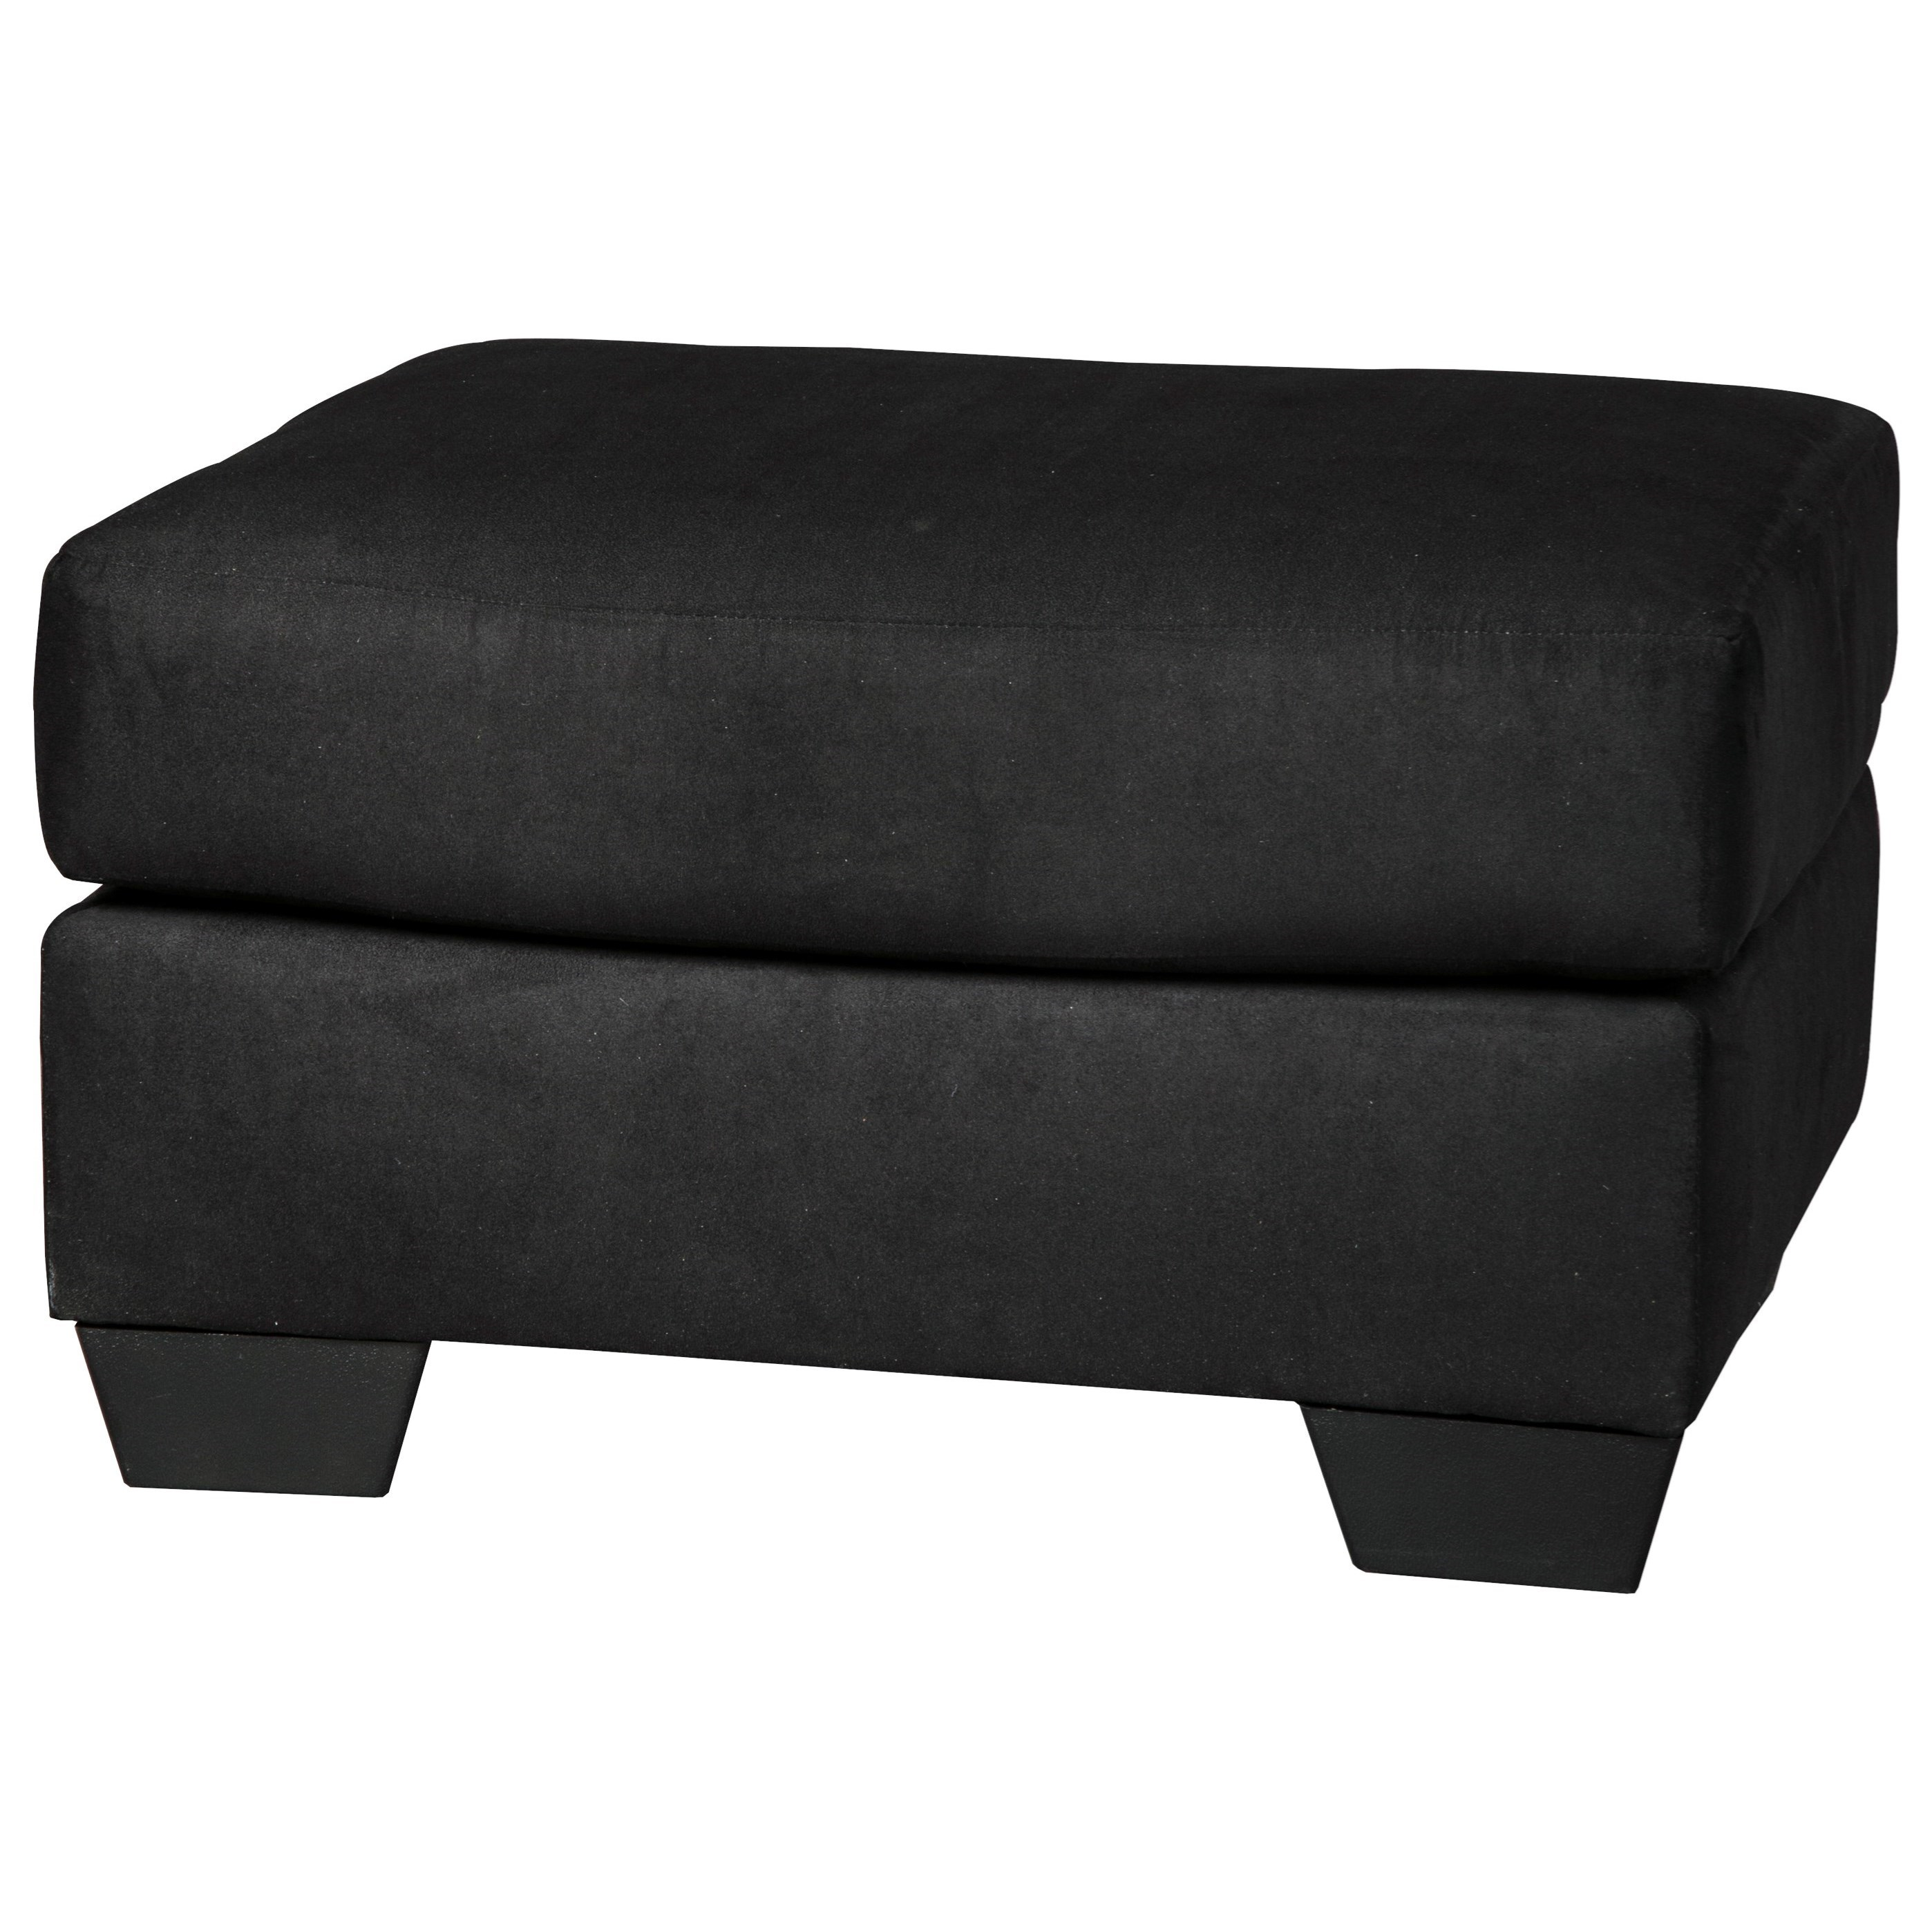 Darcy - Black Ottoman by Signature Design by Ashley at Suburban Furniture